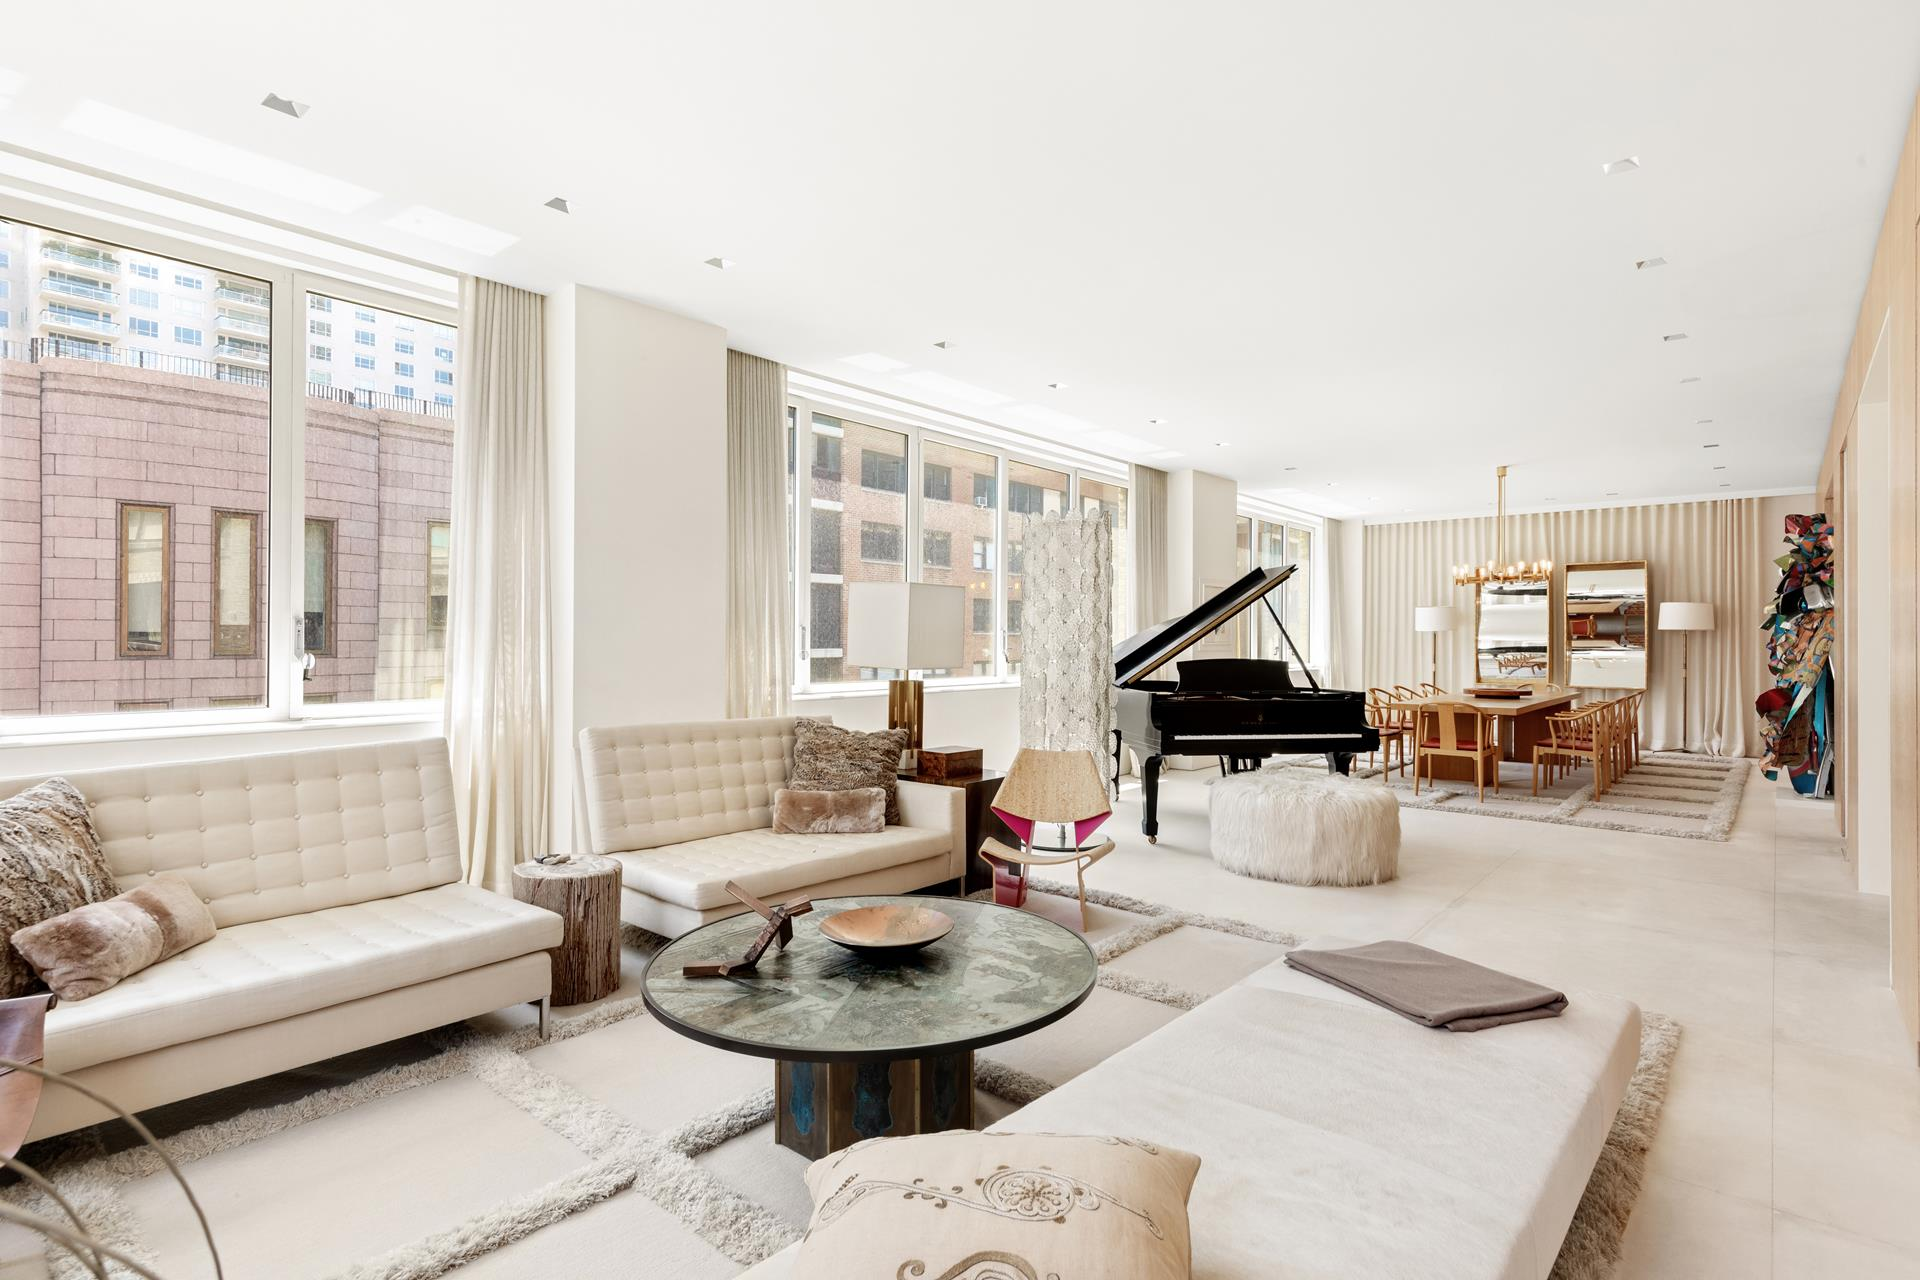 Two meticulously renovated full-floor lofts in a white glove boutique building.    Never before offered opportunity to combine two full-floor lofts, these immaculate apartments would offer 9,300 square feet, 10 bedrooms, 6 full bathrooms, two powder rooms, two outdoor terraces, and TWO PRIVATE DEEDED PARKING SPOTS.    Located in the former home of Christie's East Auction House, now the boutique LOFT67 condominium building, with amenities such as full-time doorman, direct elevator access to your own private parking spot, spacious storage rooms for each residence and concierge   services. Please reach out to discuss further details of this unique combination.